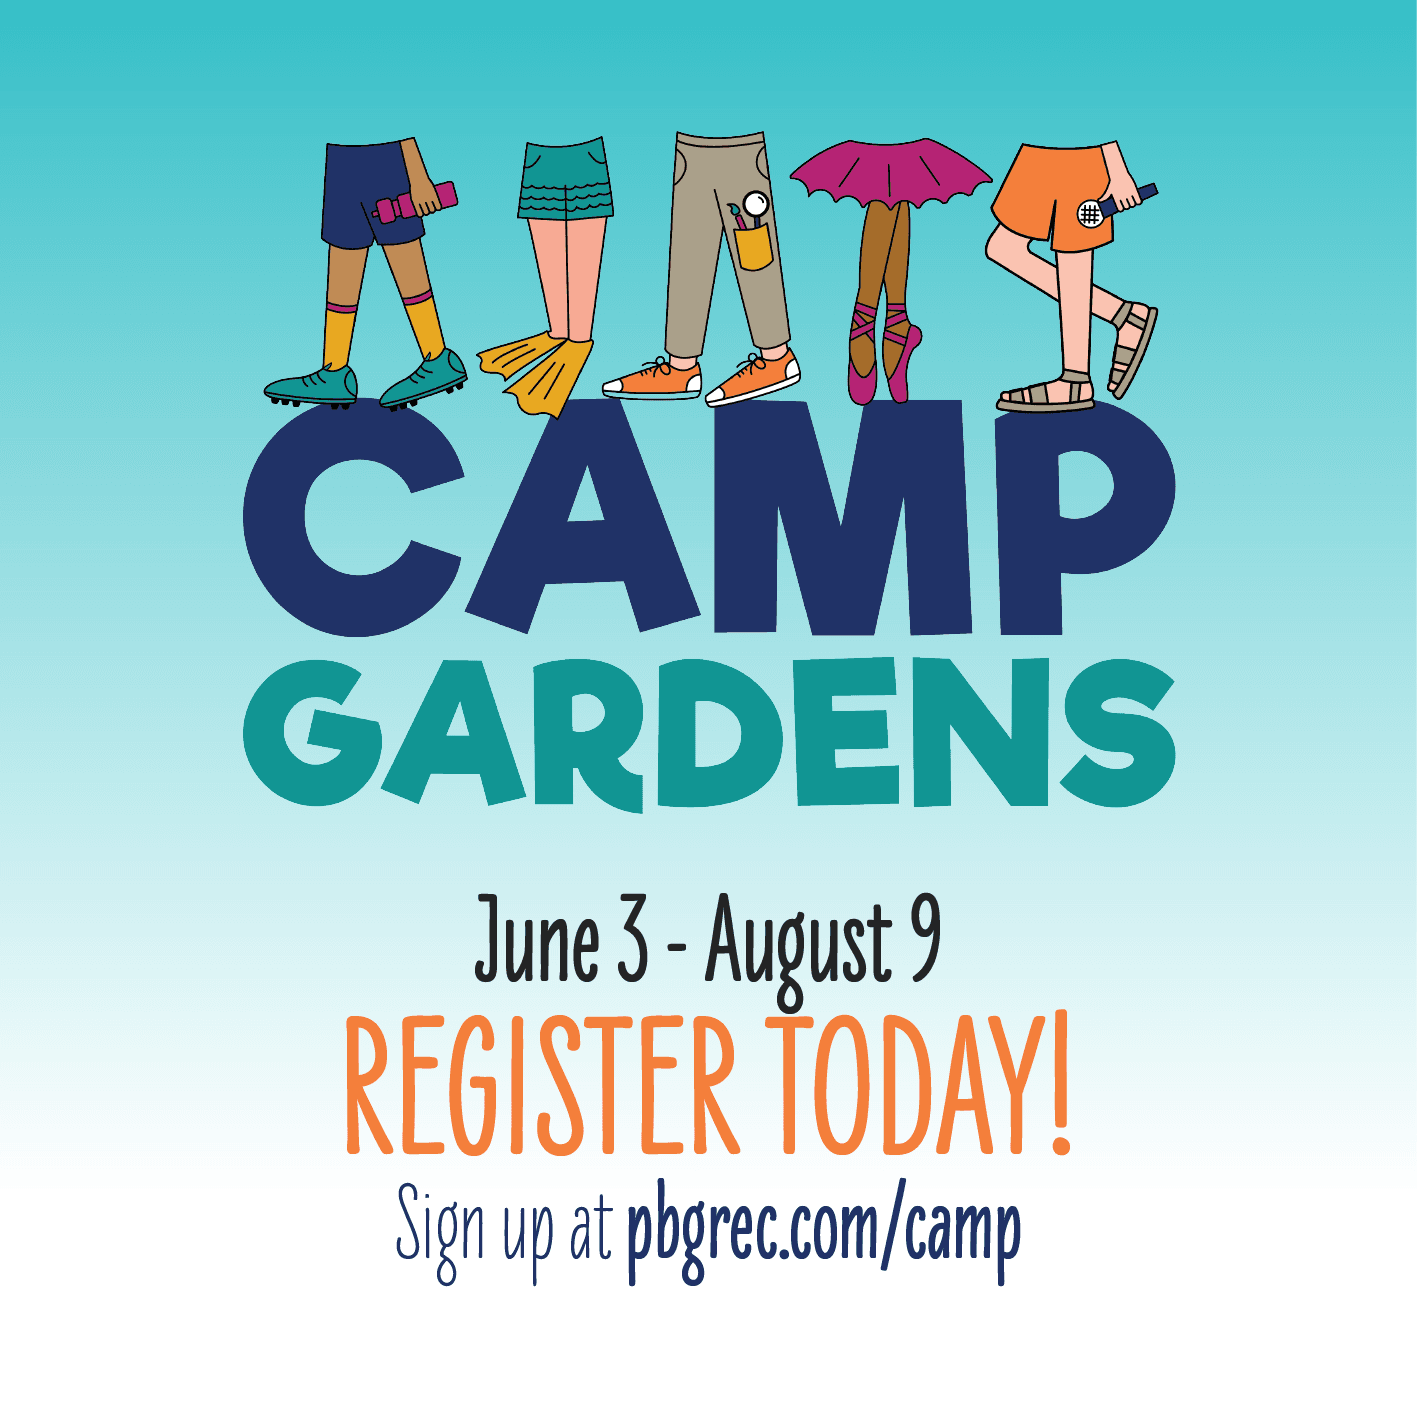 Register today for Camp Gardens, June 3- August 9. Link to camp registration.